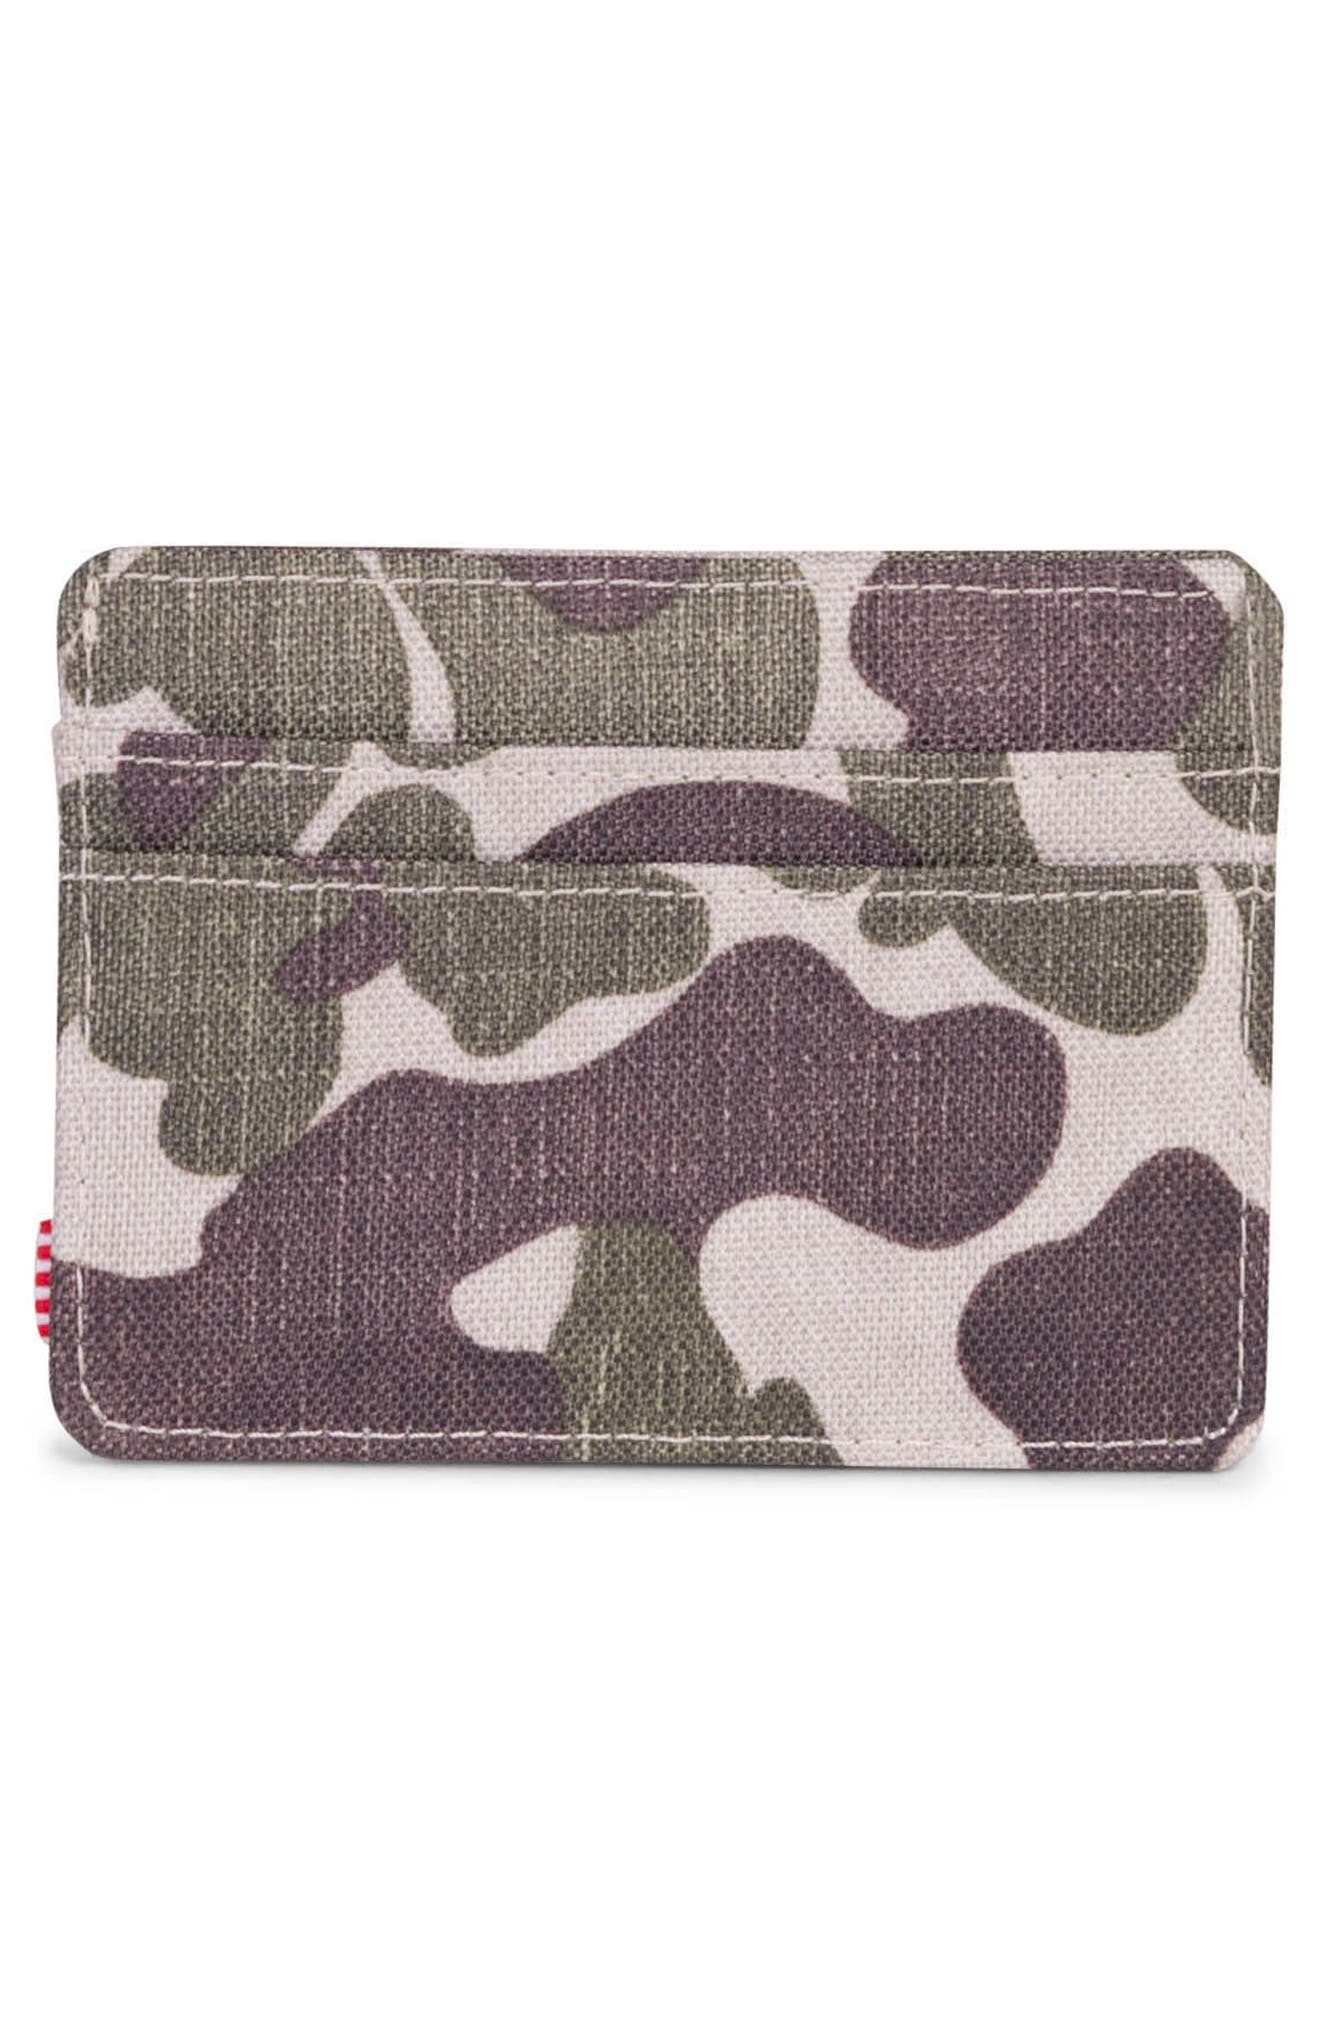 Charlie Card Case,                             Alternate thumbnail 2, color,                             Frog Camo